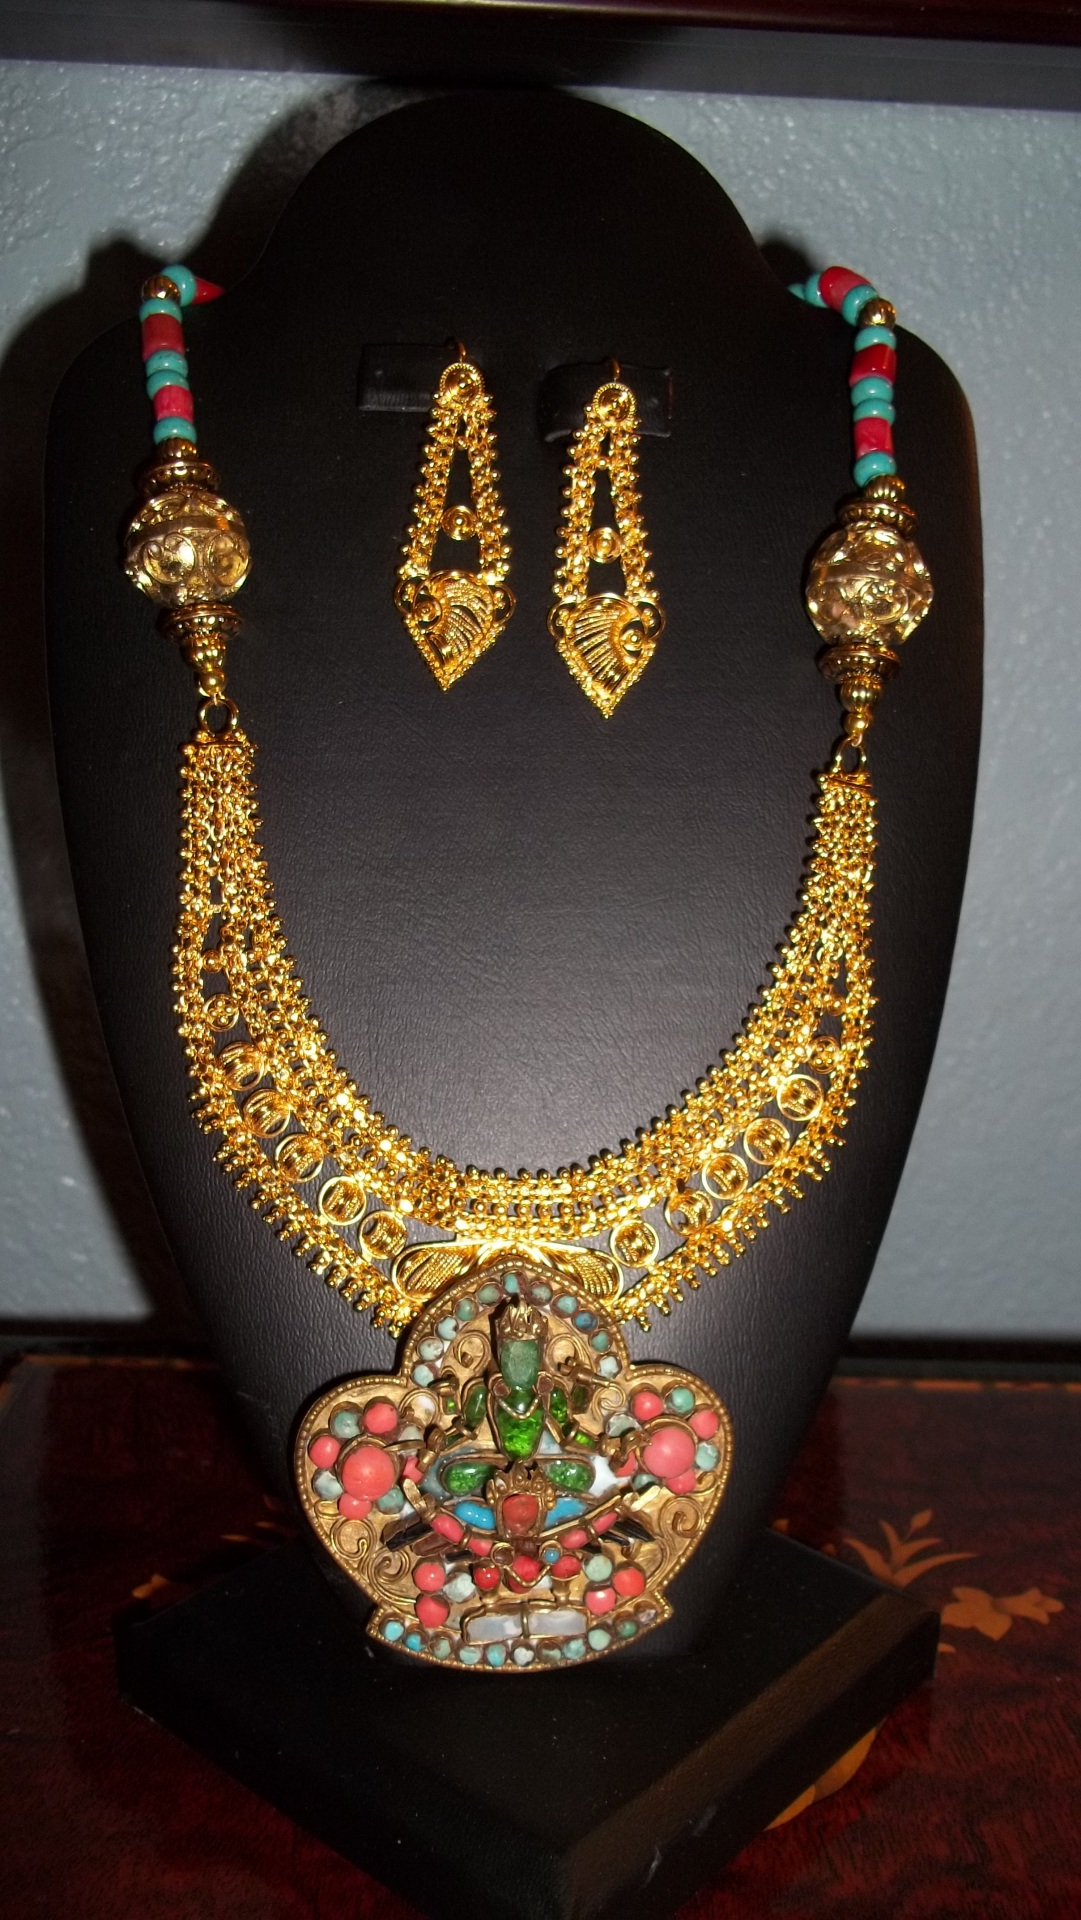 Hindu Marriage Necklace with Ancient Hindu Pendant